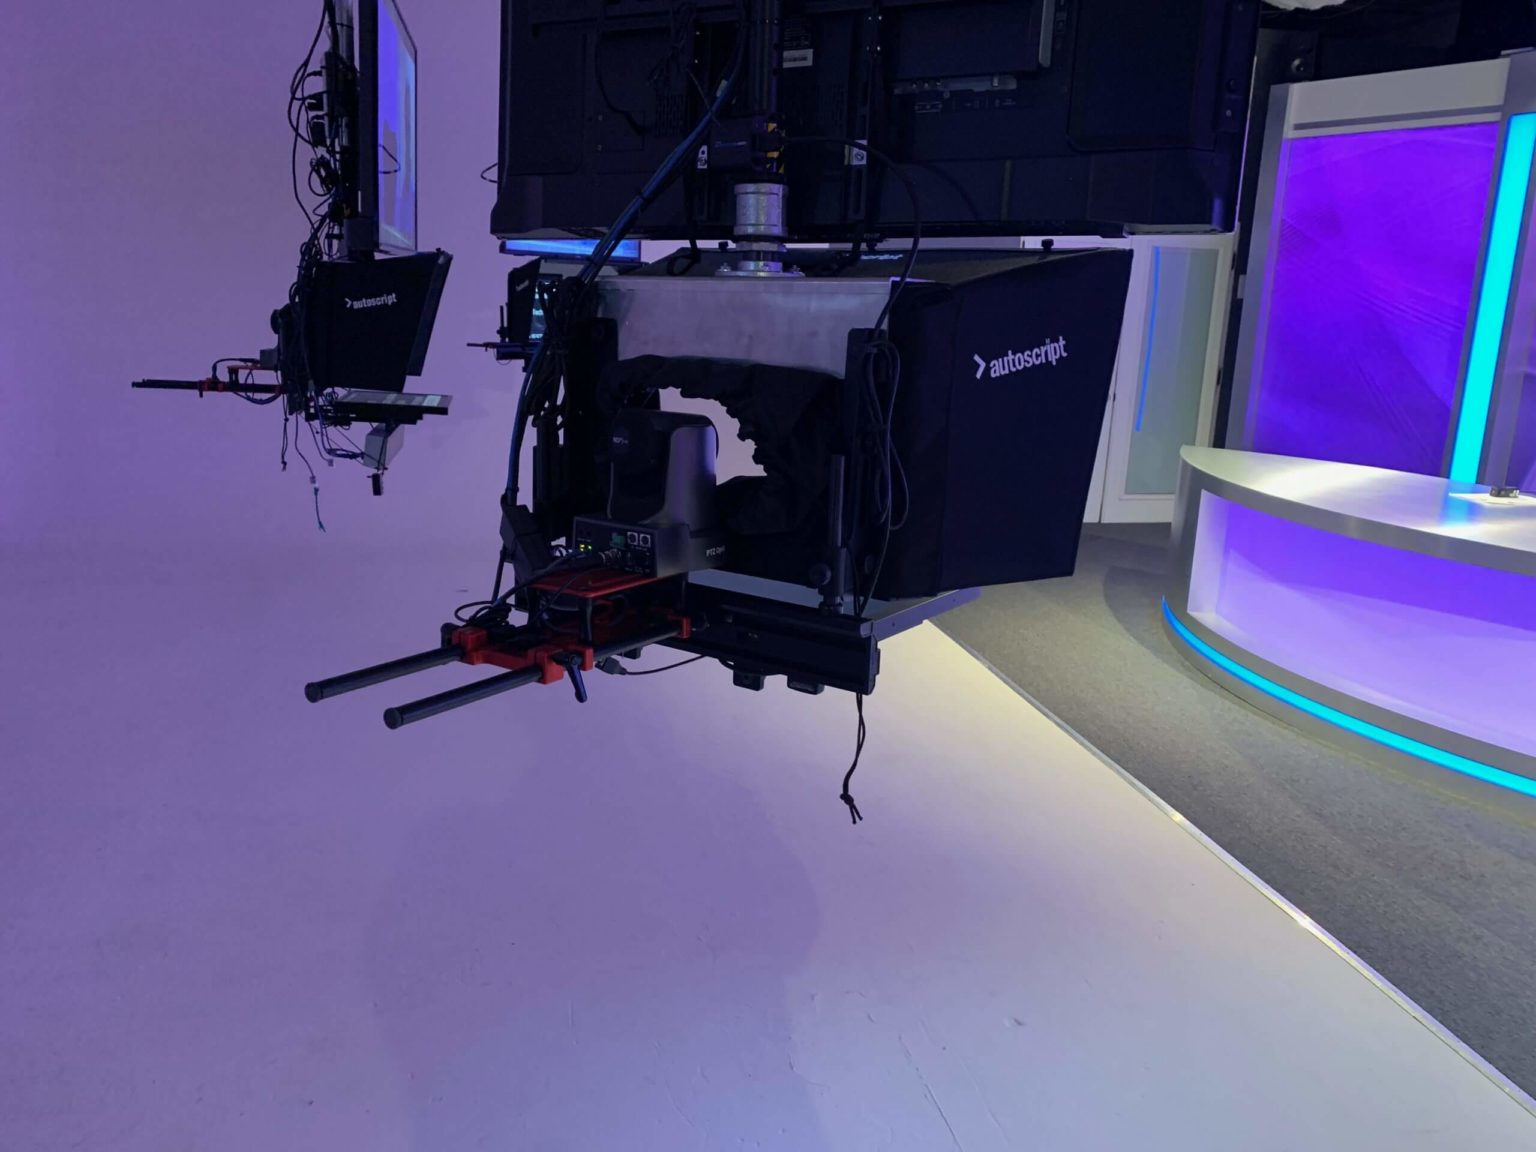 PTZ Cameras inside of teleprompters